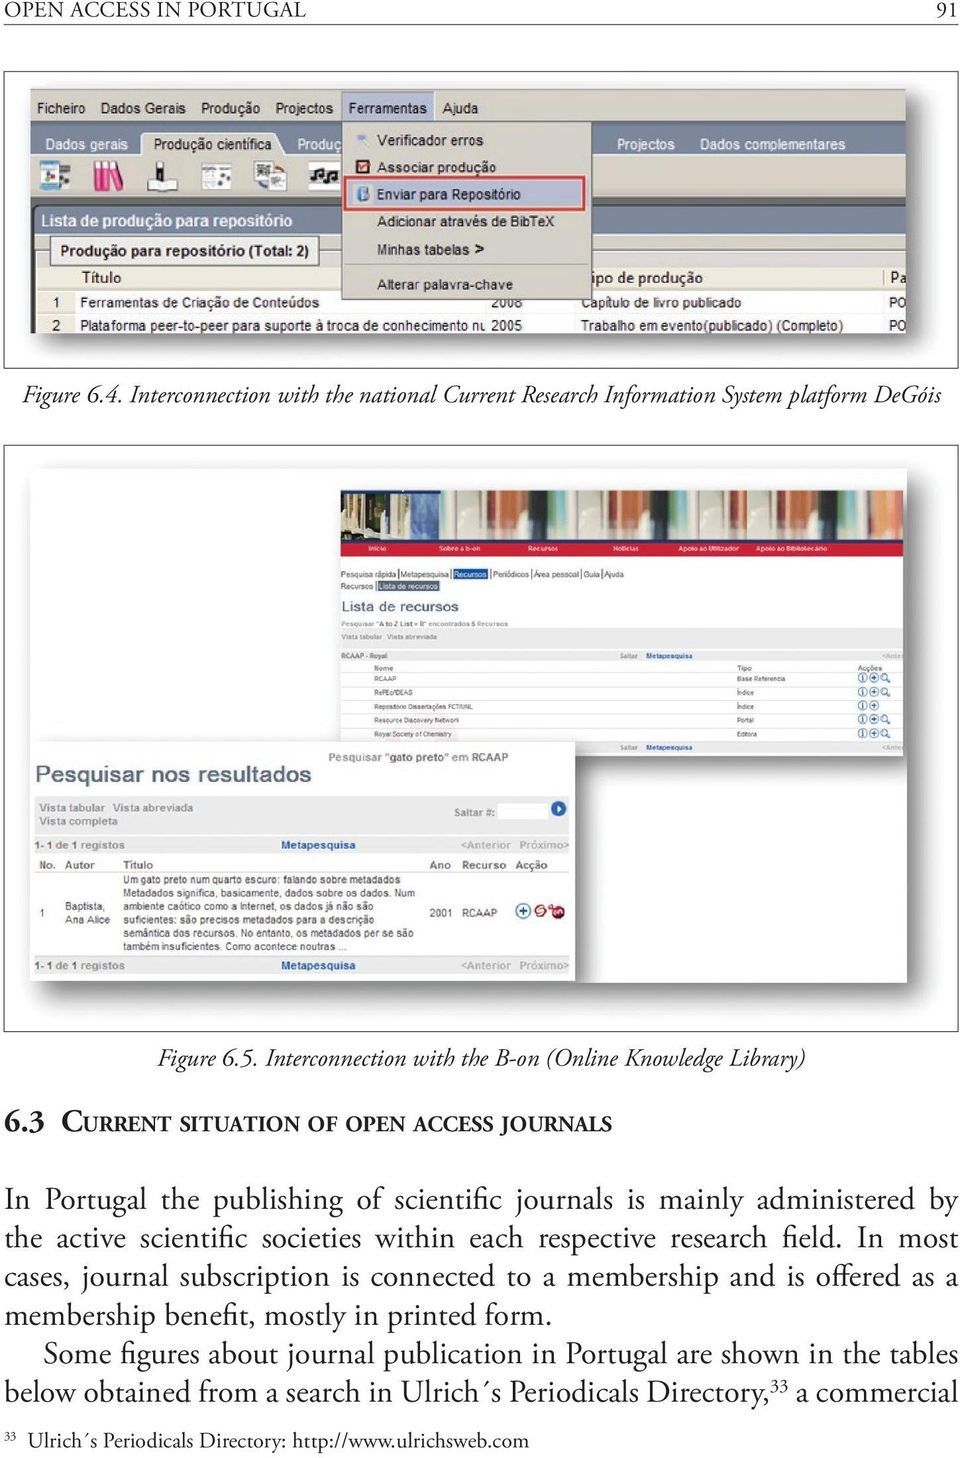 3 Current situation of open access journals In Portugal the publishing of scientific journals is mainly administered by the active scientific societies within each respective